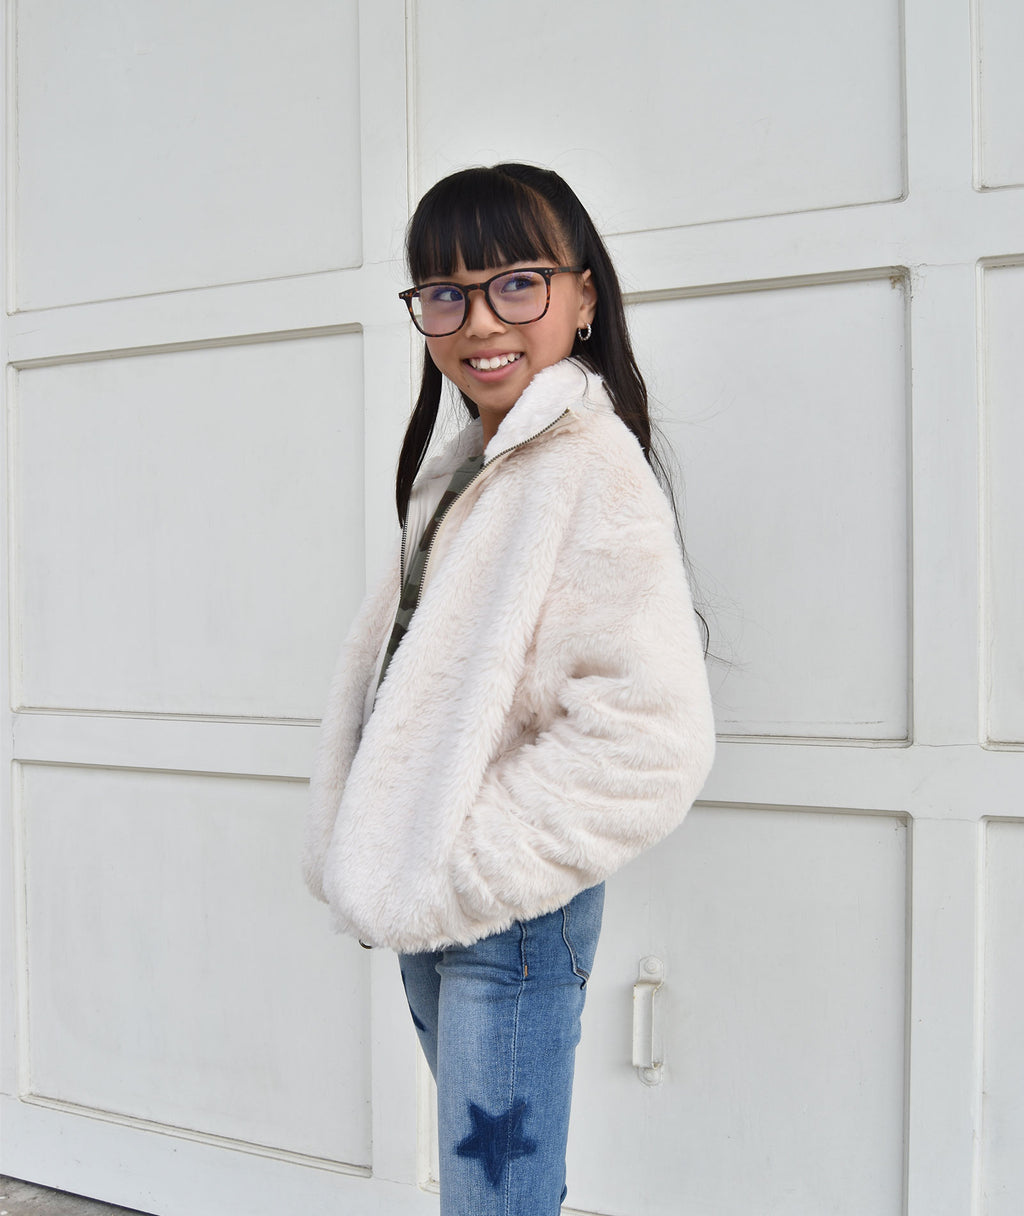 For All Seasons Girls Ivory Fuzzy Jacket